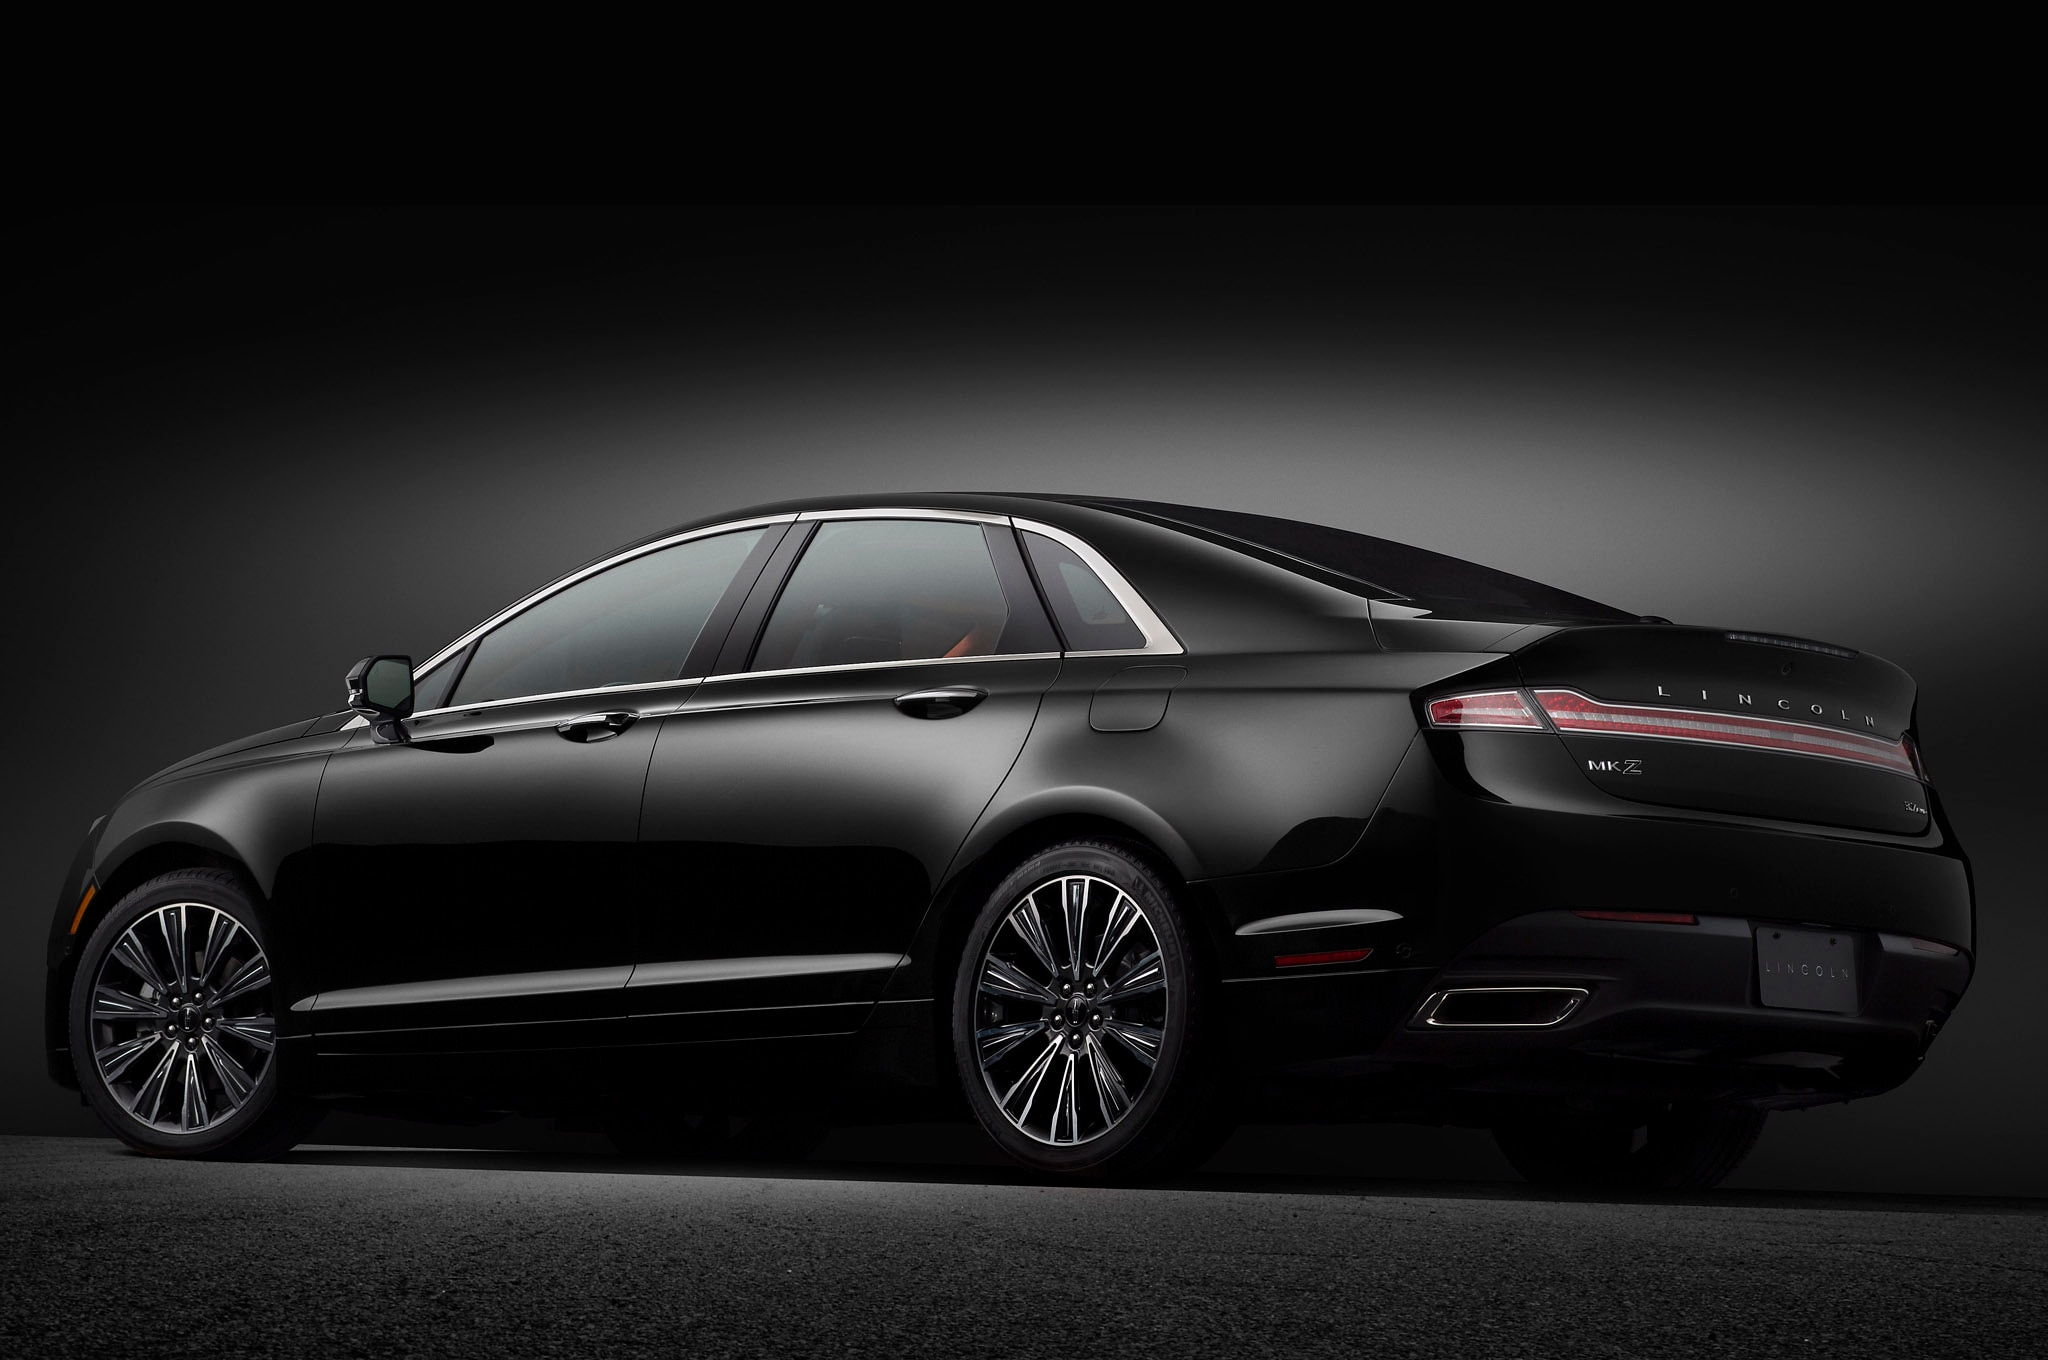 black lincoln car 2015. show more black lincoln car 2015 l